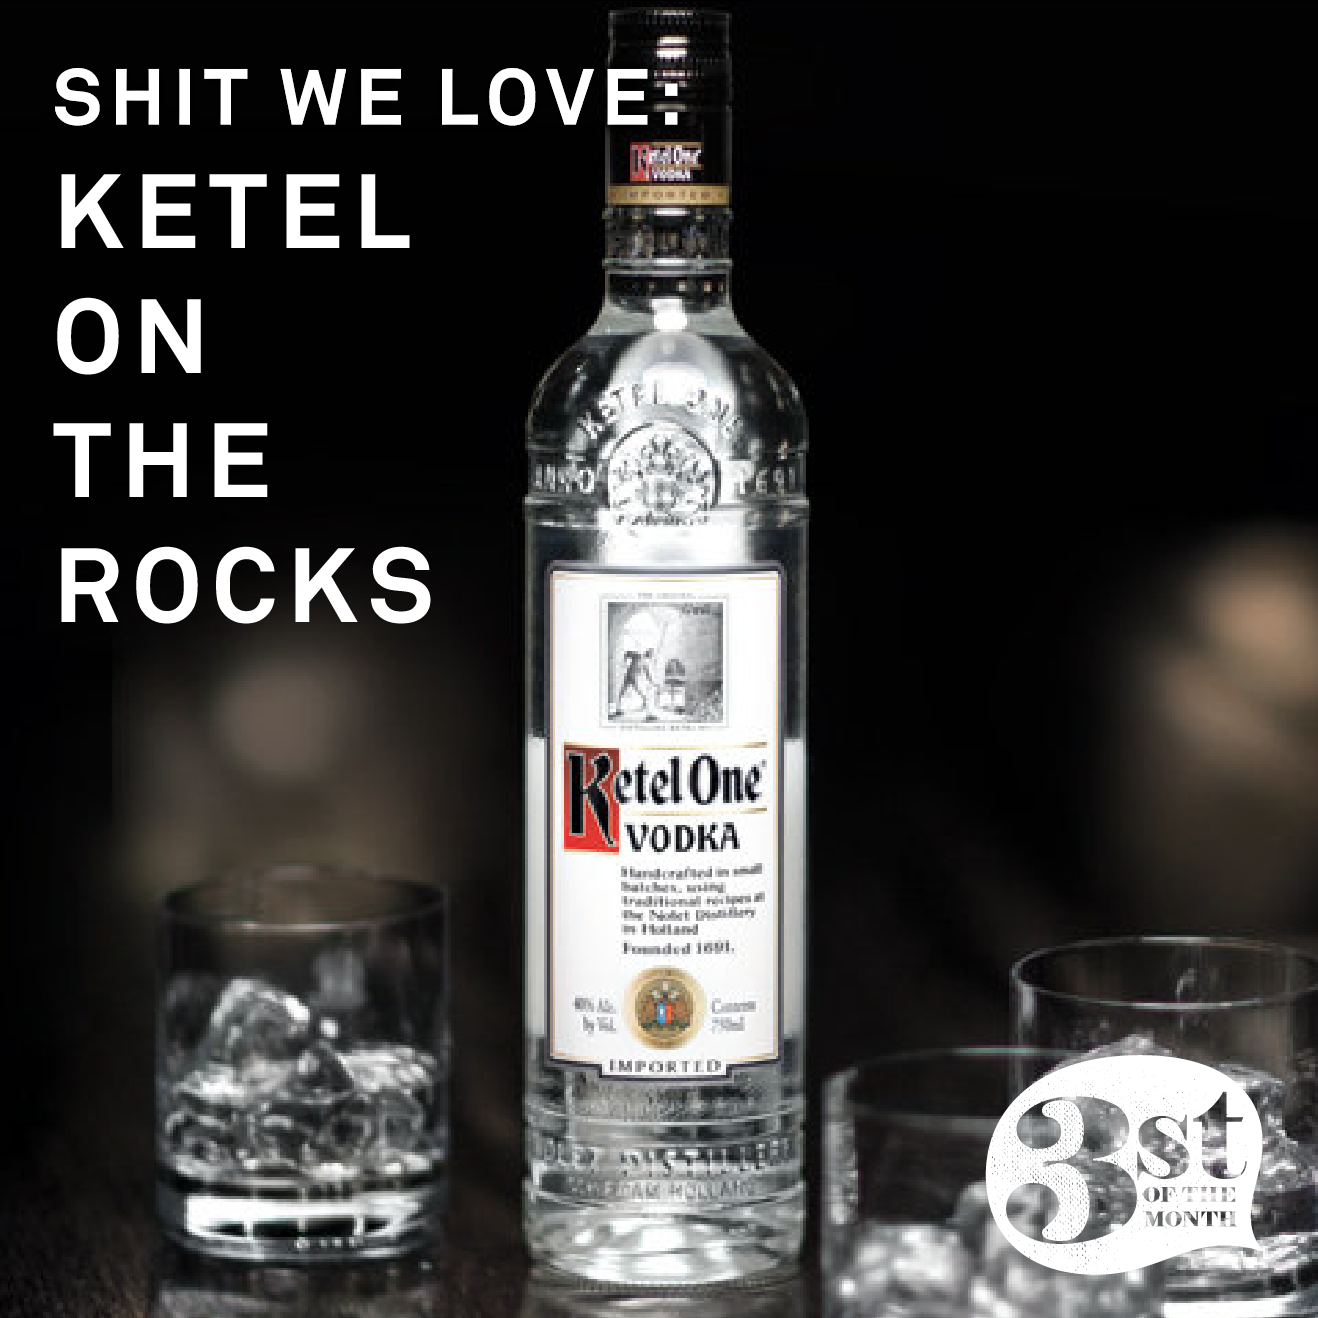 SHIT WE LOVE: KETEL ON THE ROCKS